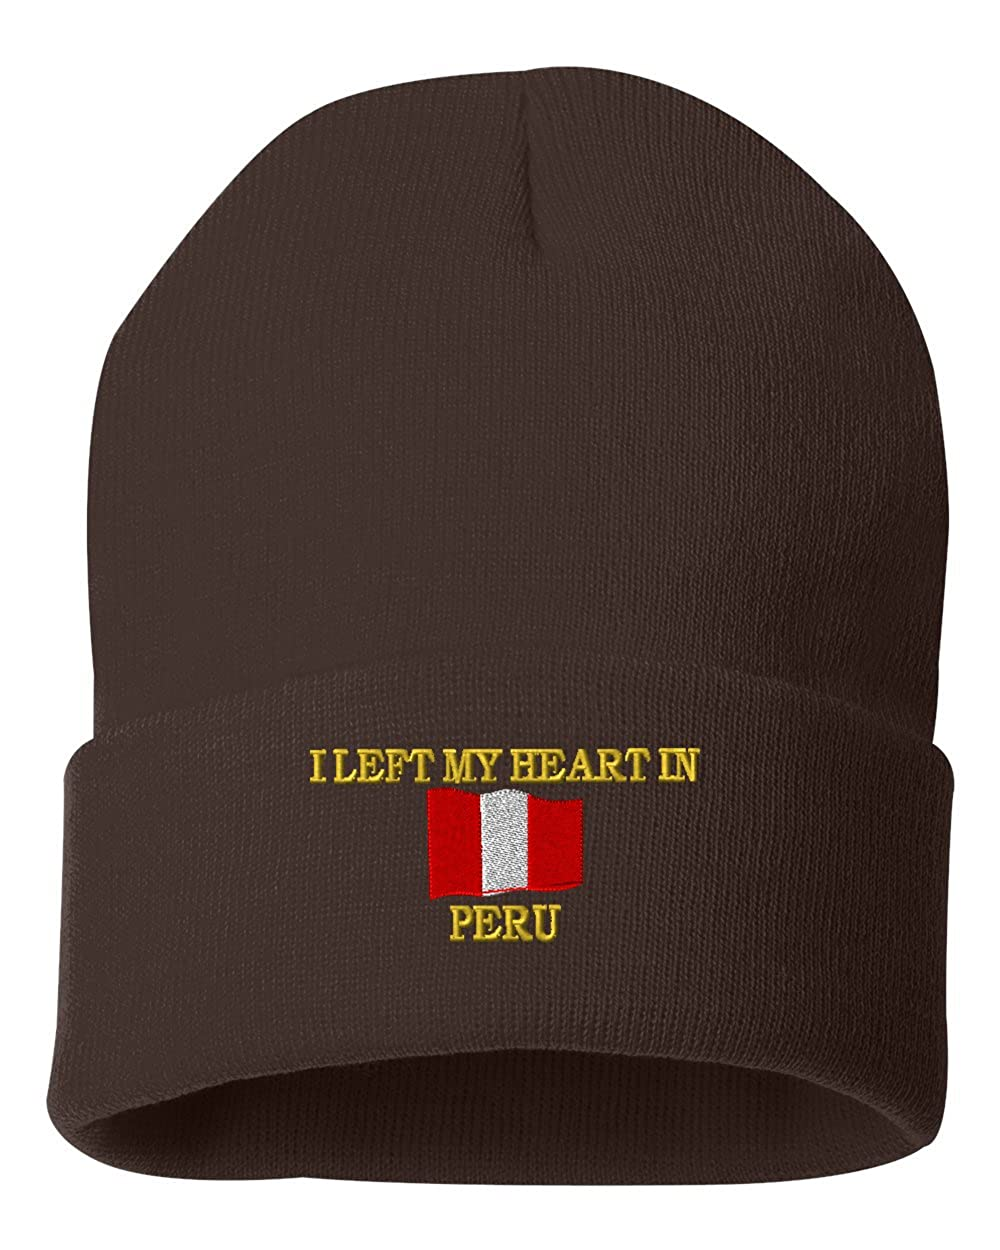 I LEFT MY HEART IN PERU Custom Personalized Embroidery Embroidered Beanie